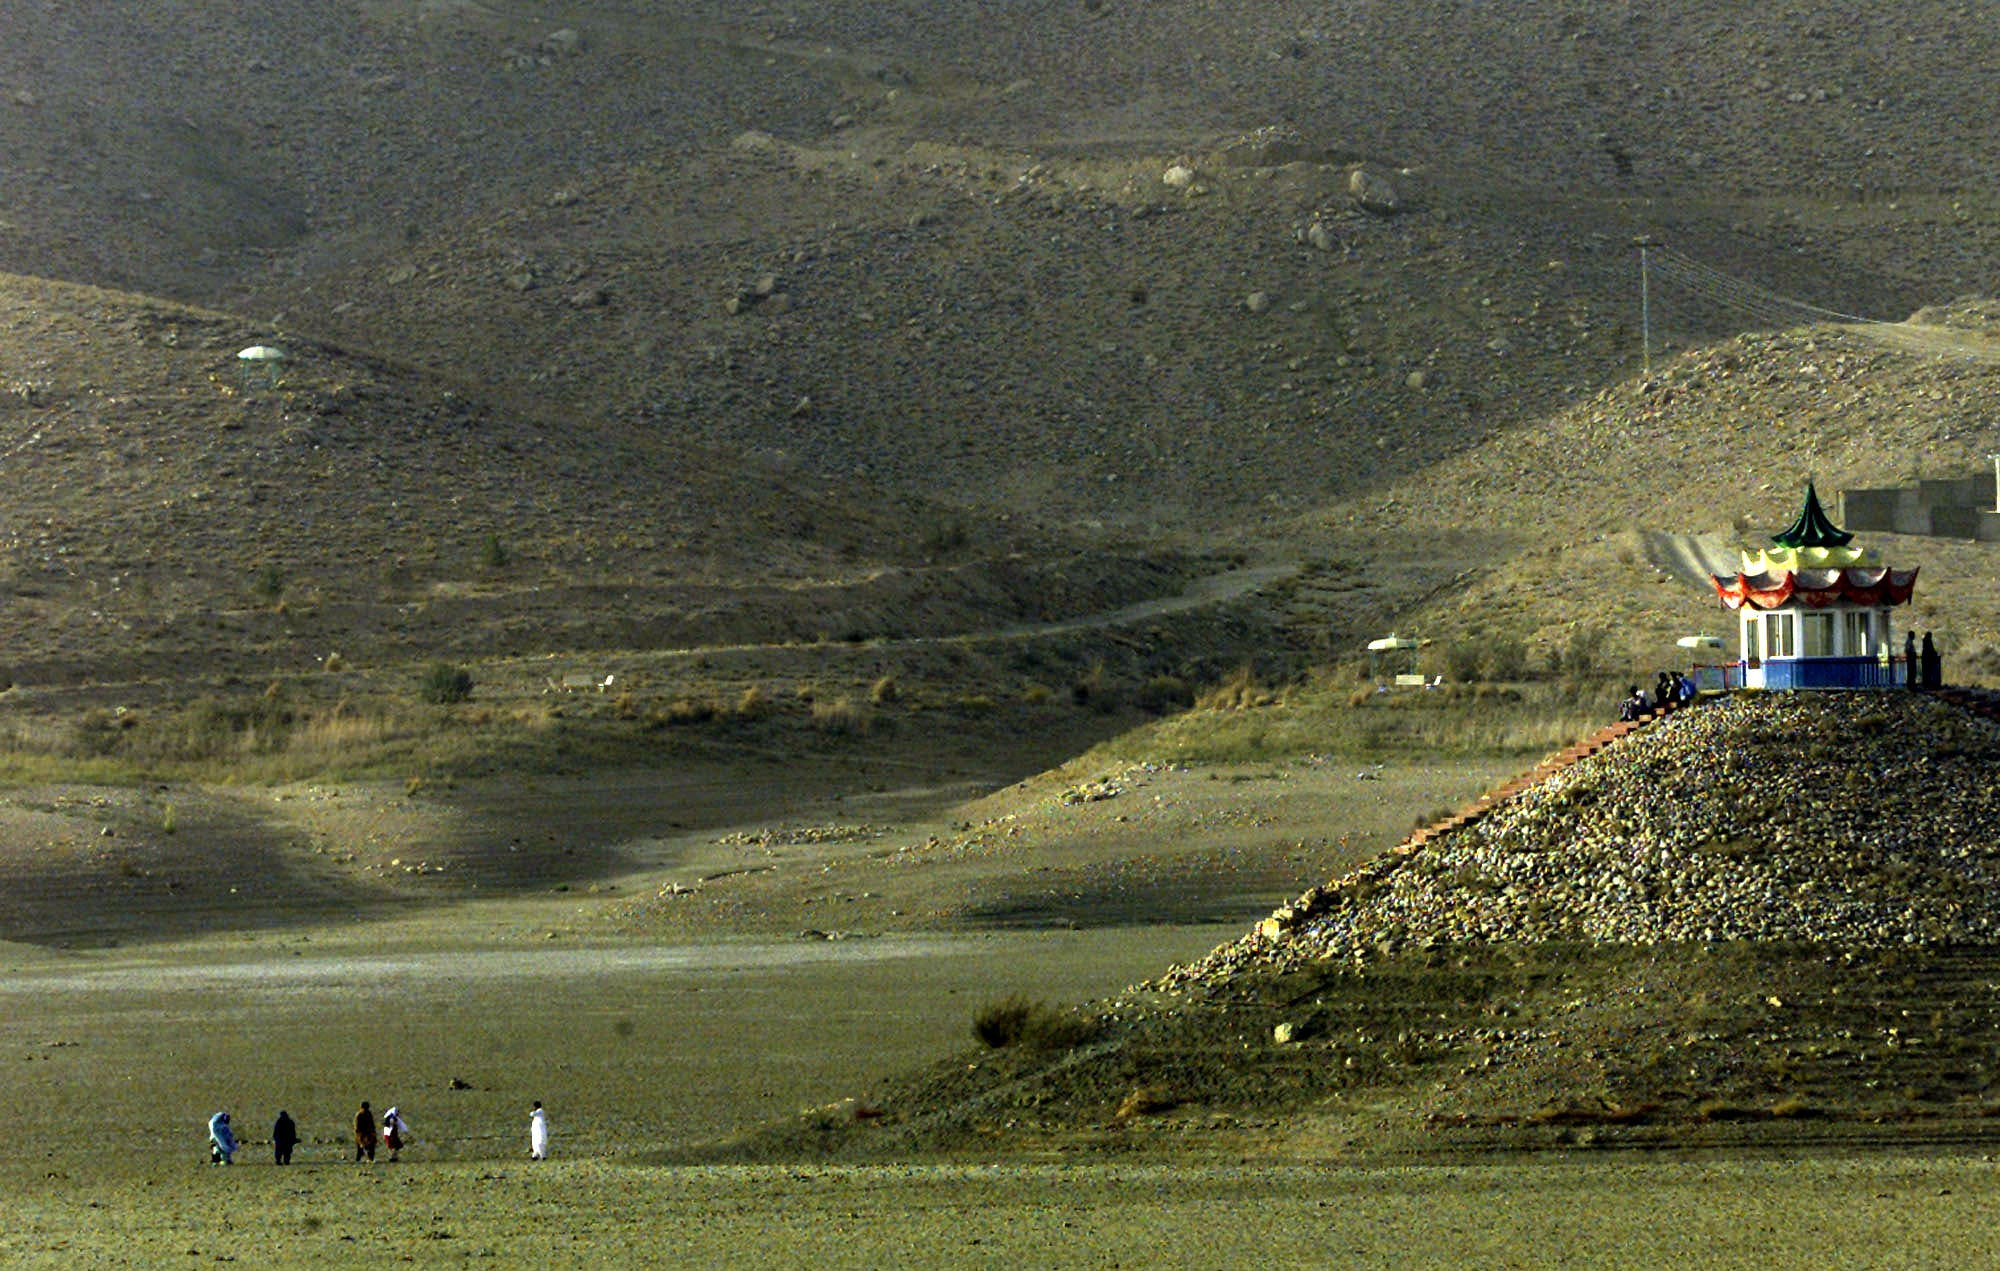 Pakistanis walk towards what was once an island, on the now dried-out Hanna Lake, outside the Baluchistan province capital of Quetta on Oct. 3, 2001. (AP)